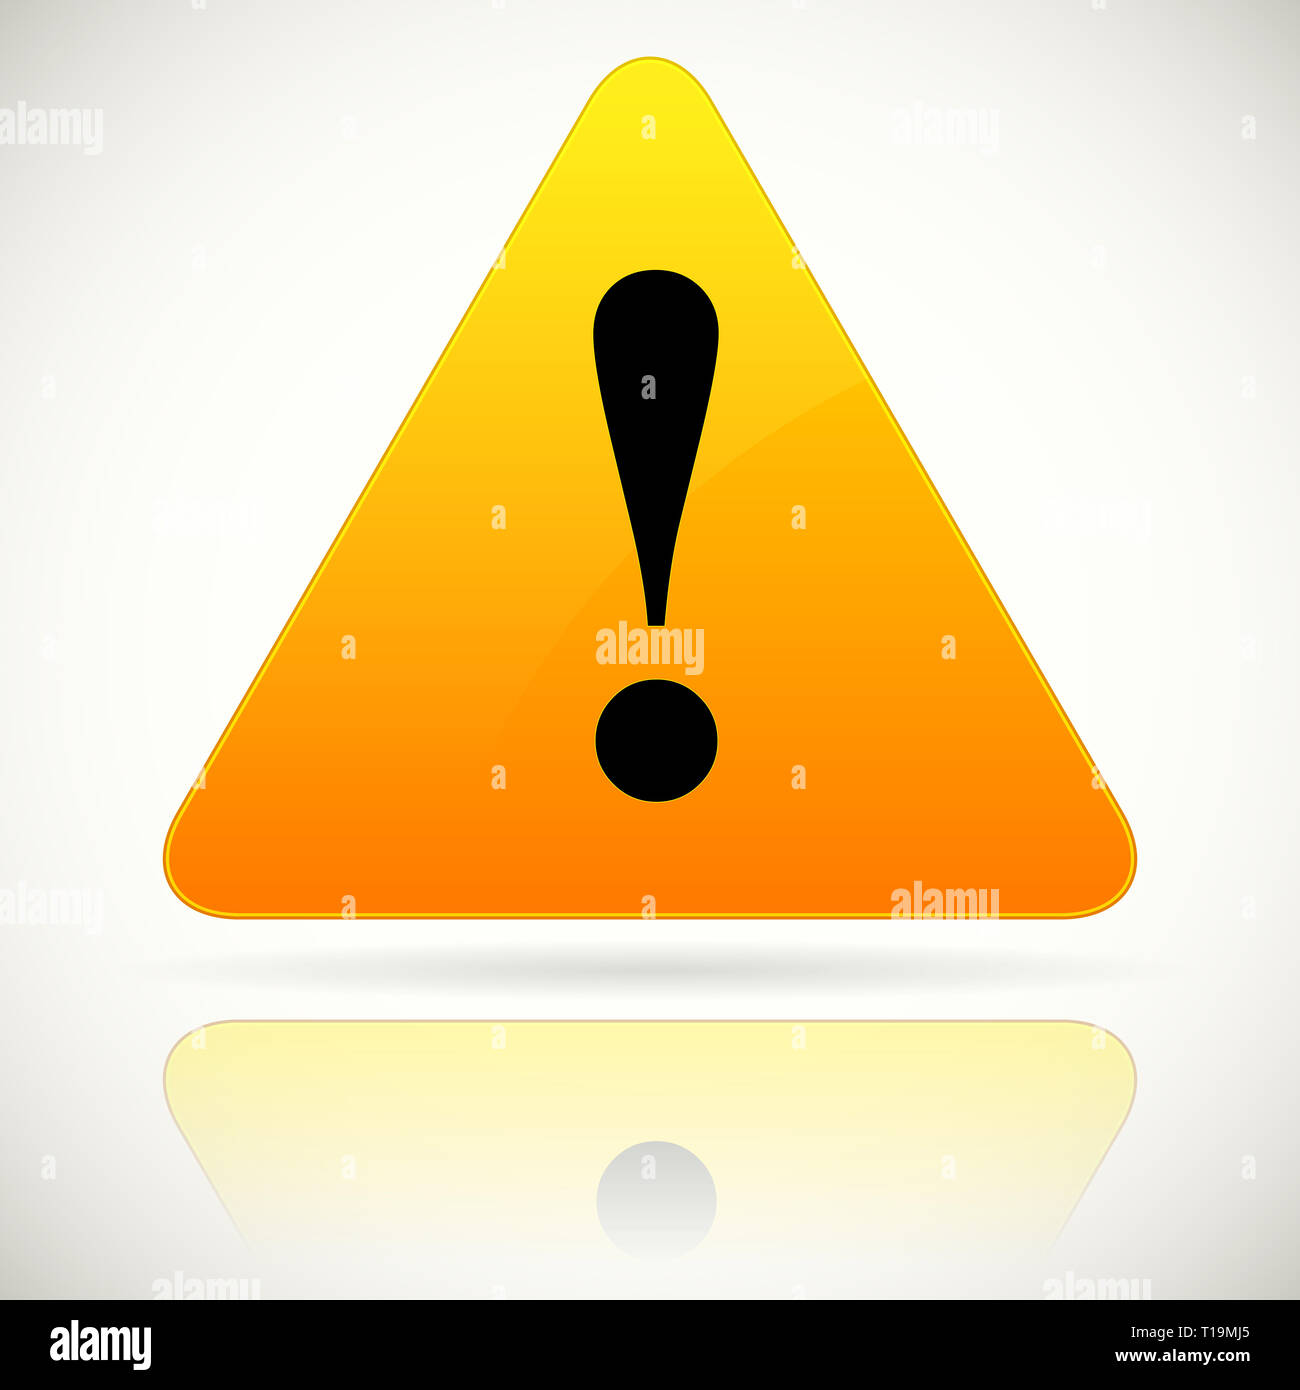 Triangular yellow roadsign with exclamation mark over white. attention, hazard, safety, alert concepts - Stock Image